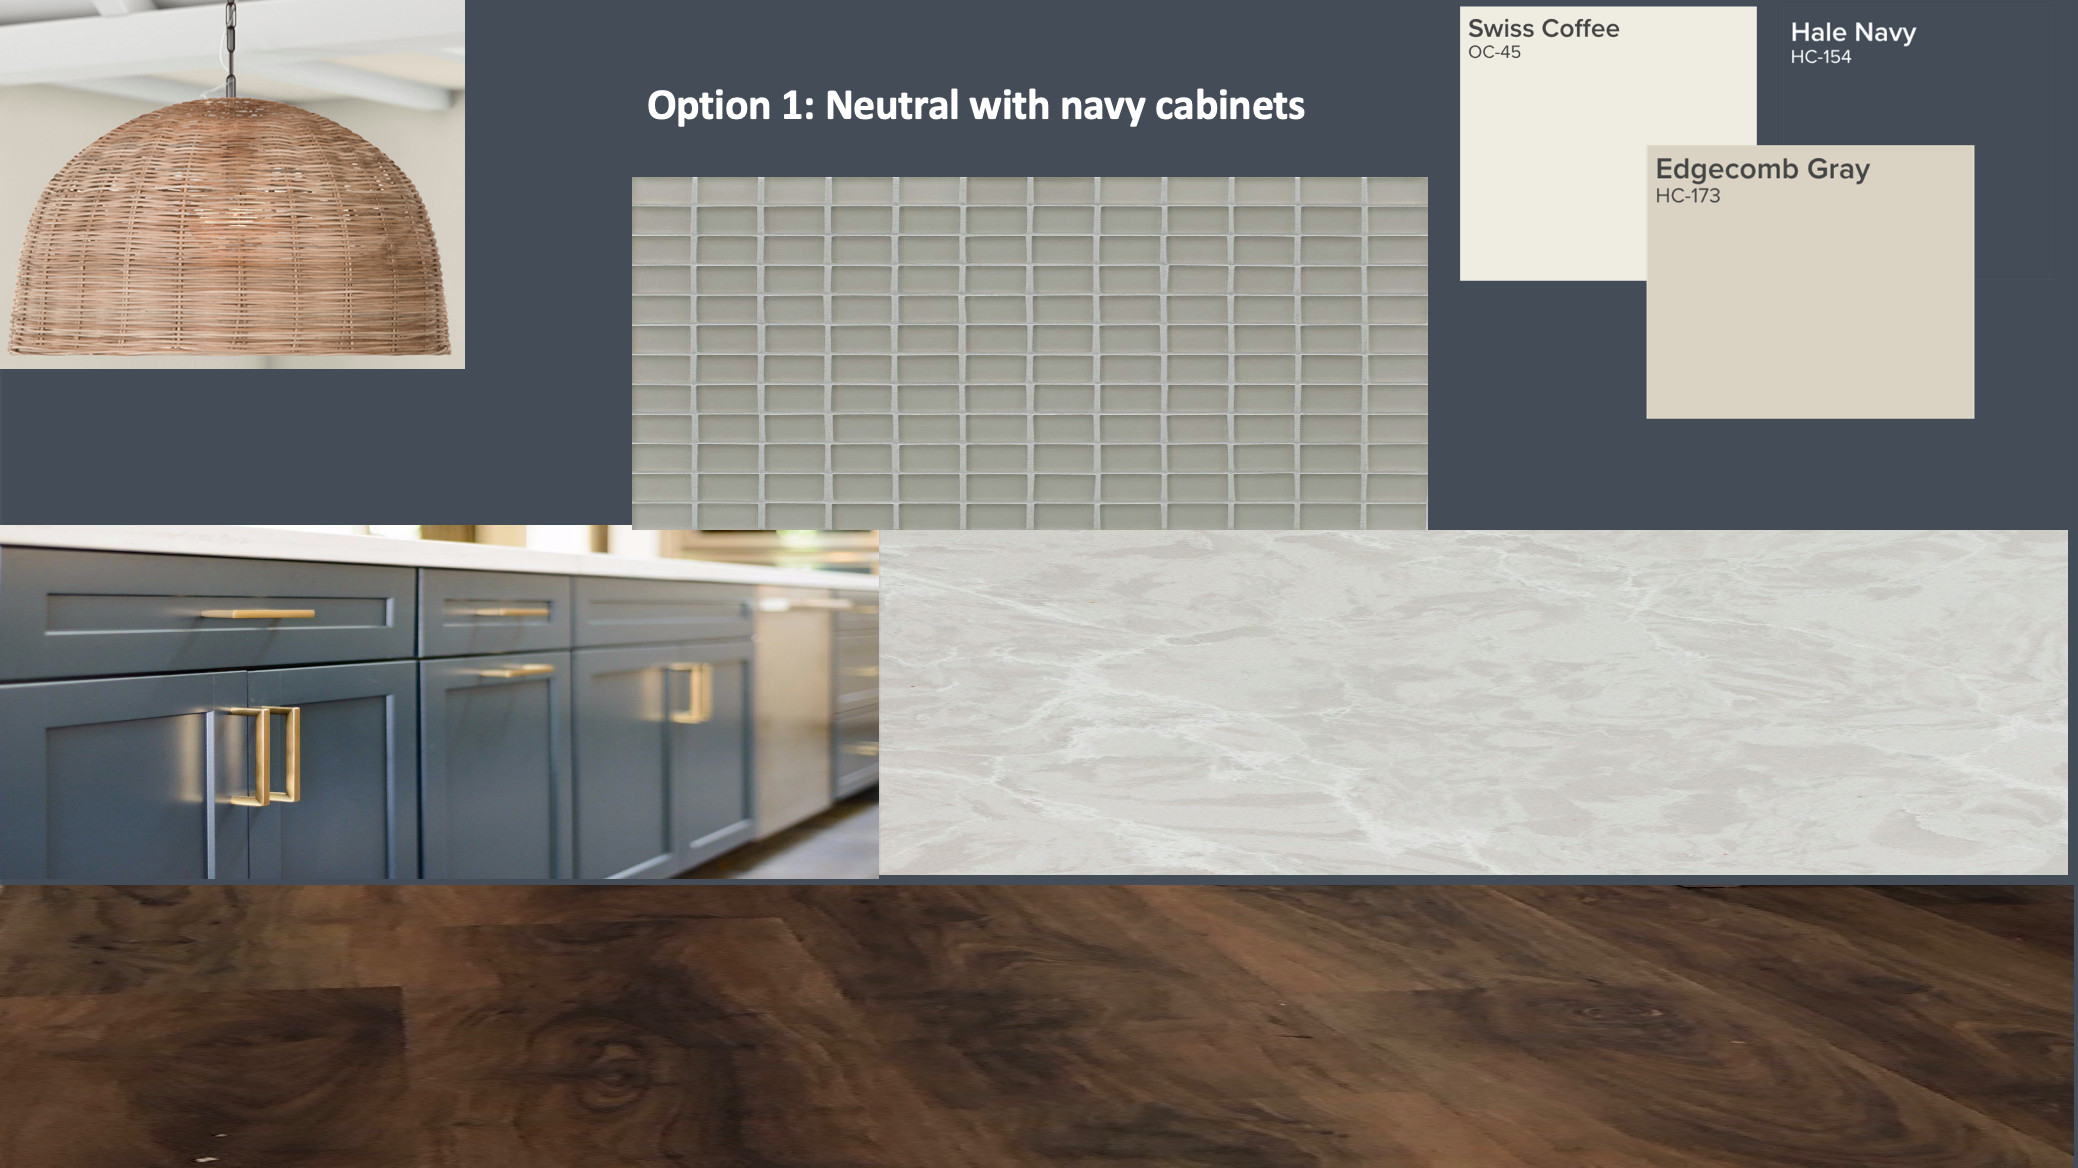 Option 1: Neutral with navy cabinets